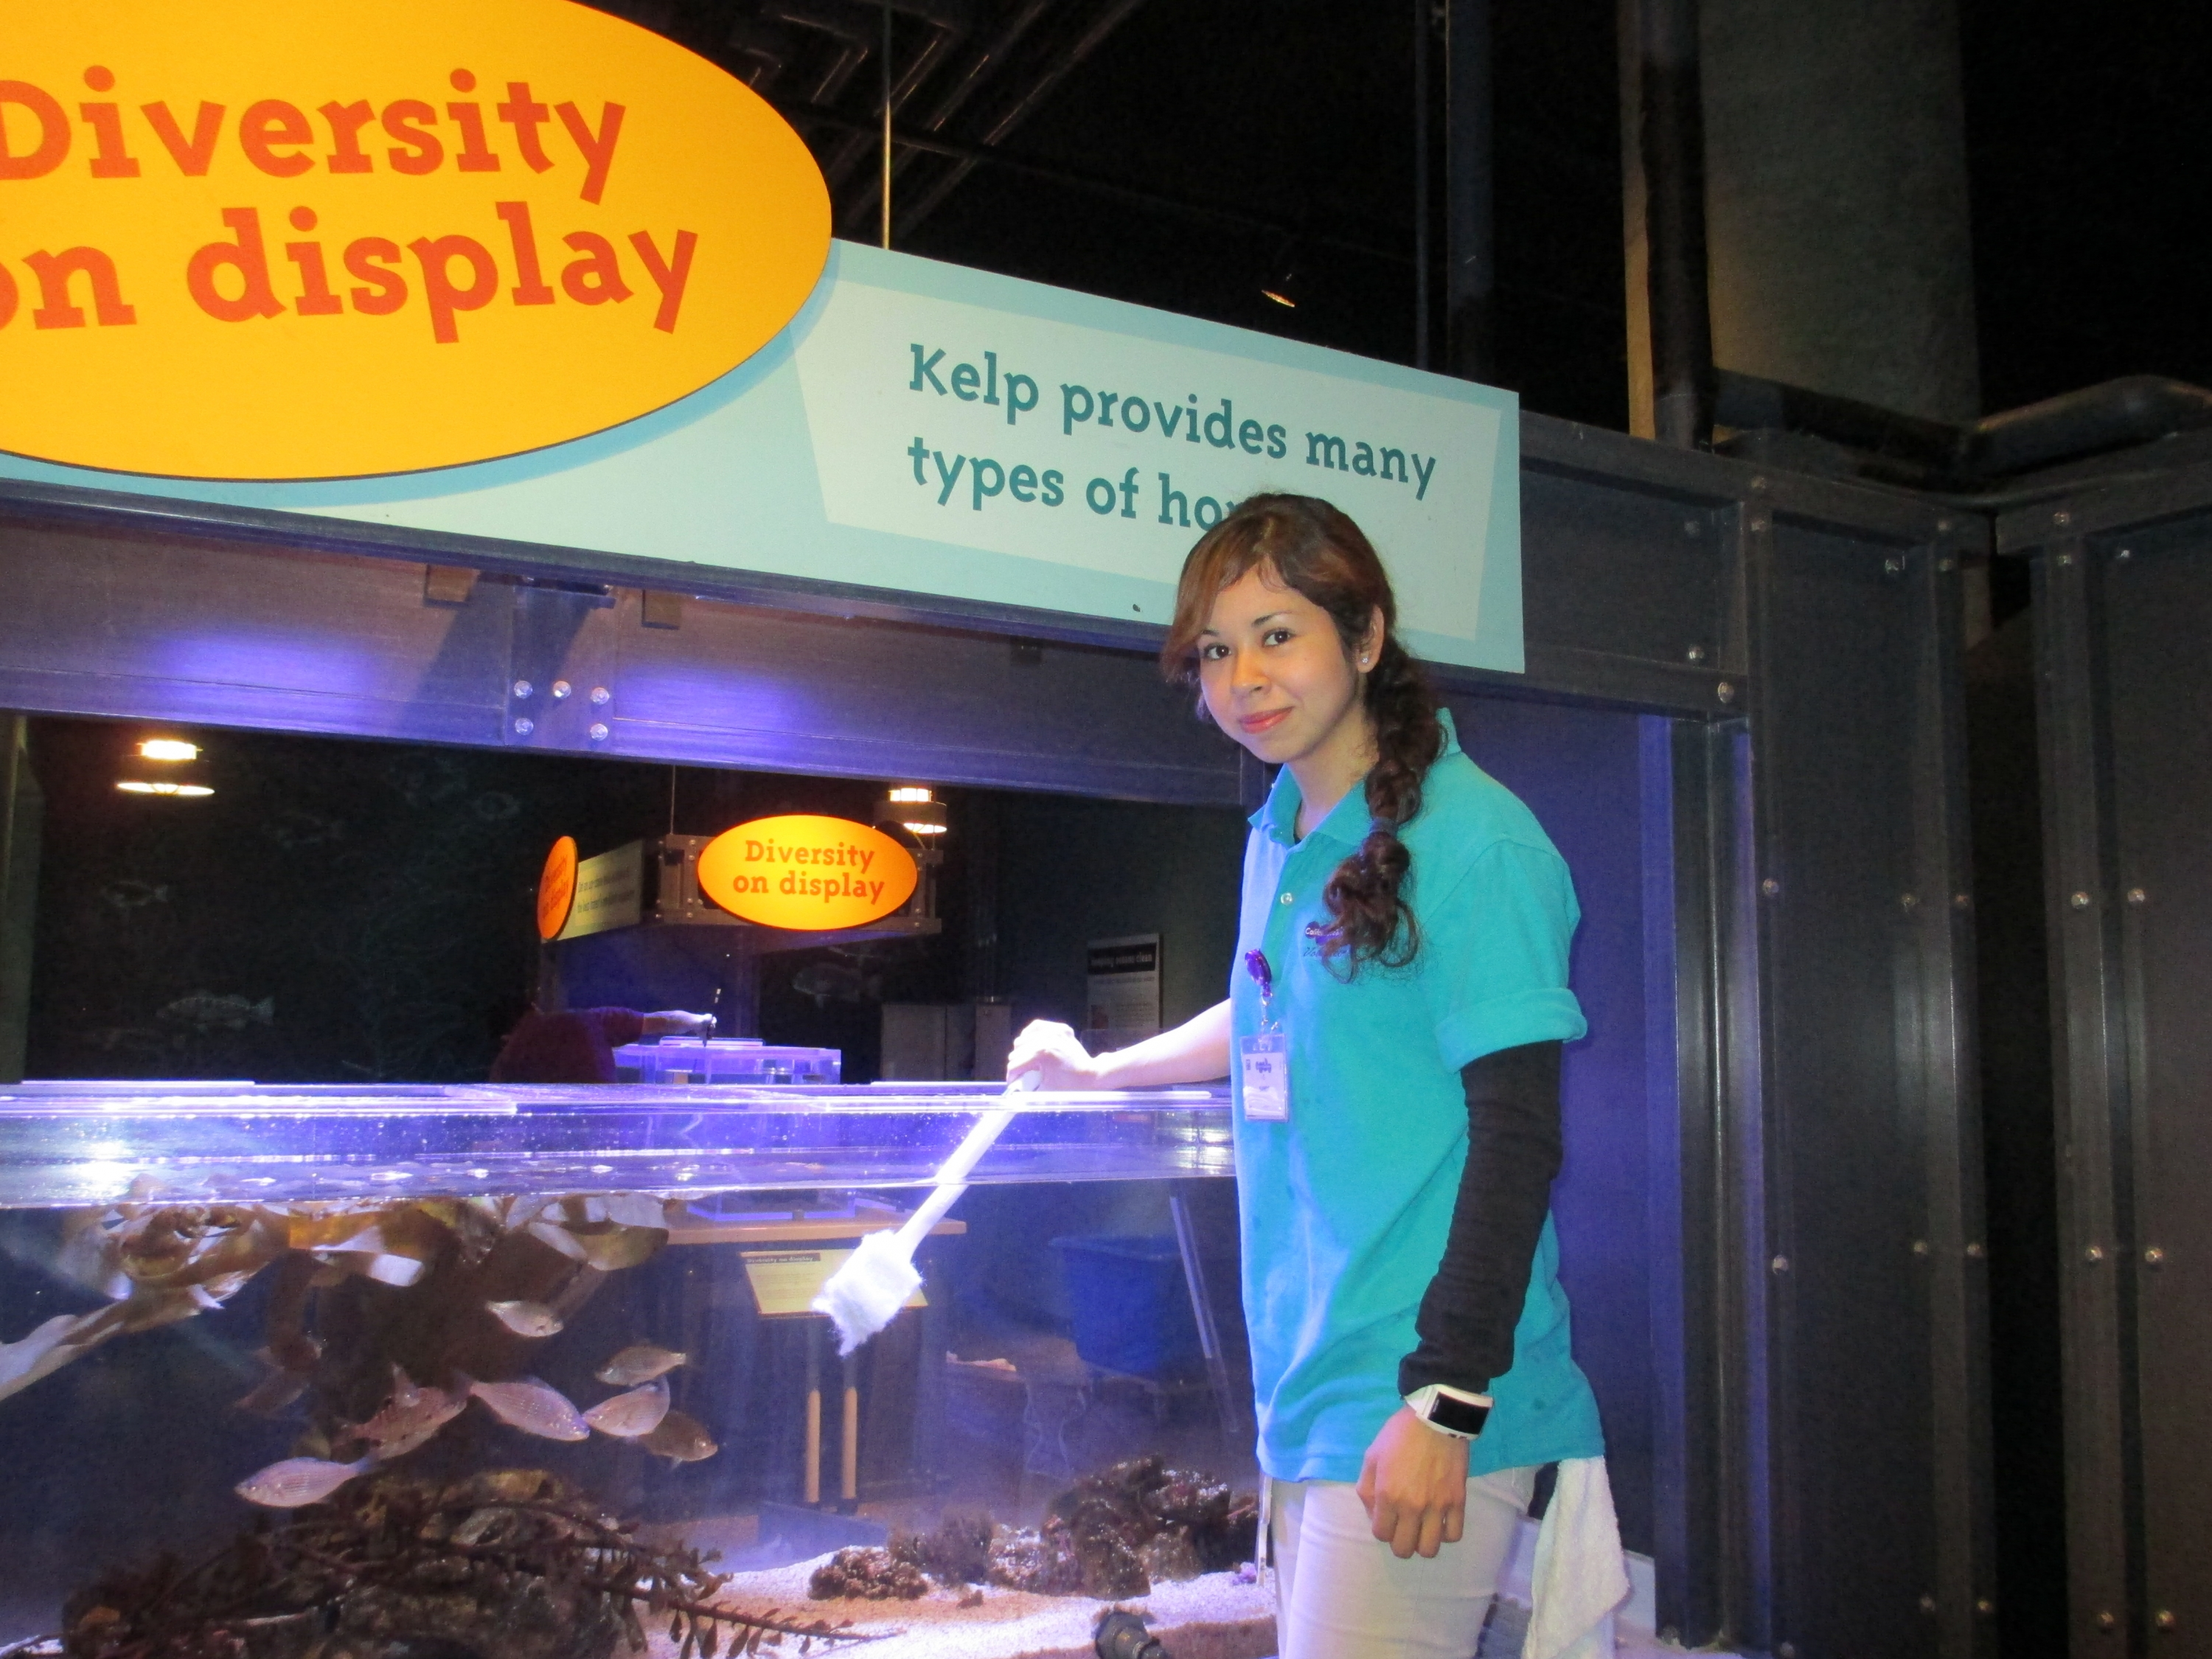 A Science Center Husbandry Volunteer in teal polo uniform cleans Jewel Tank filled with fish in Kelp Forest